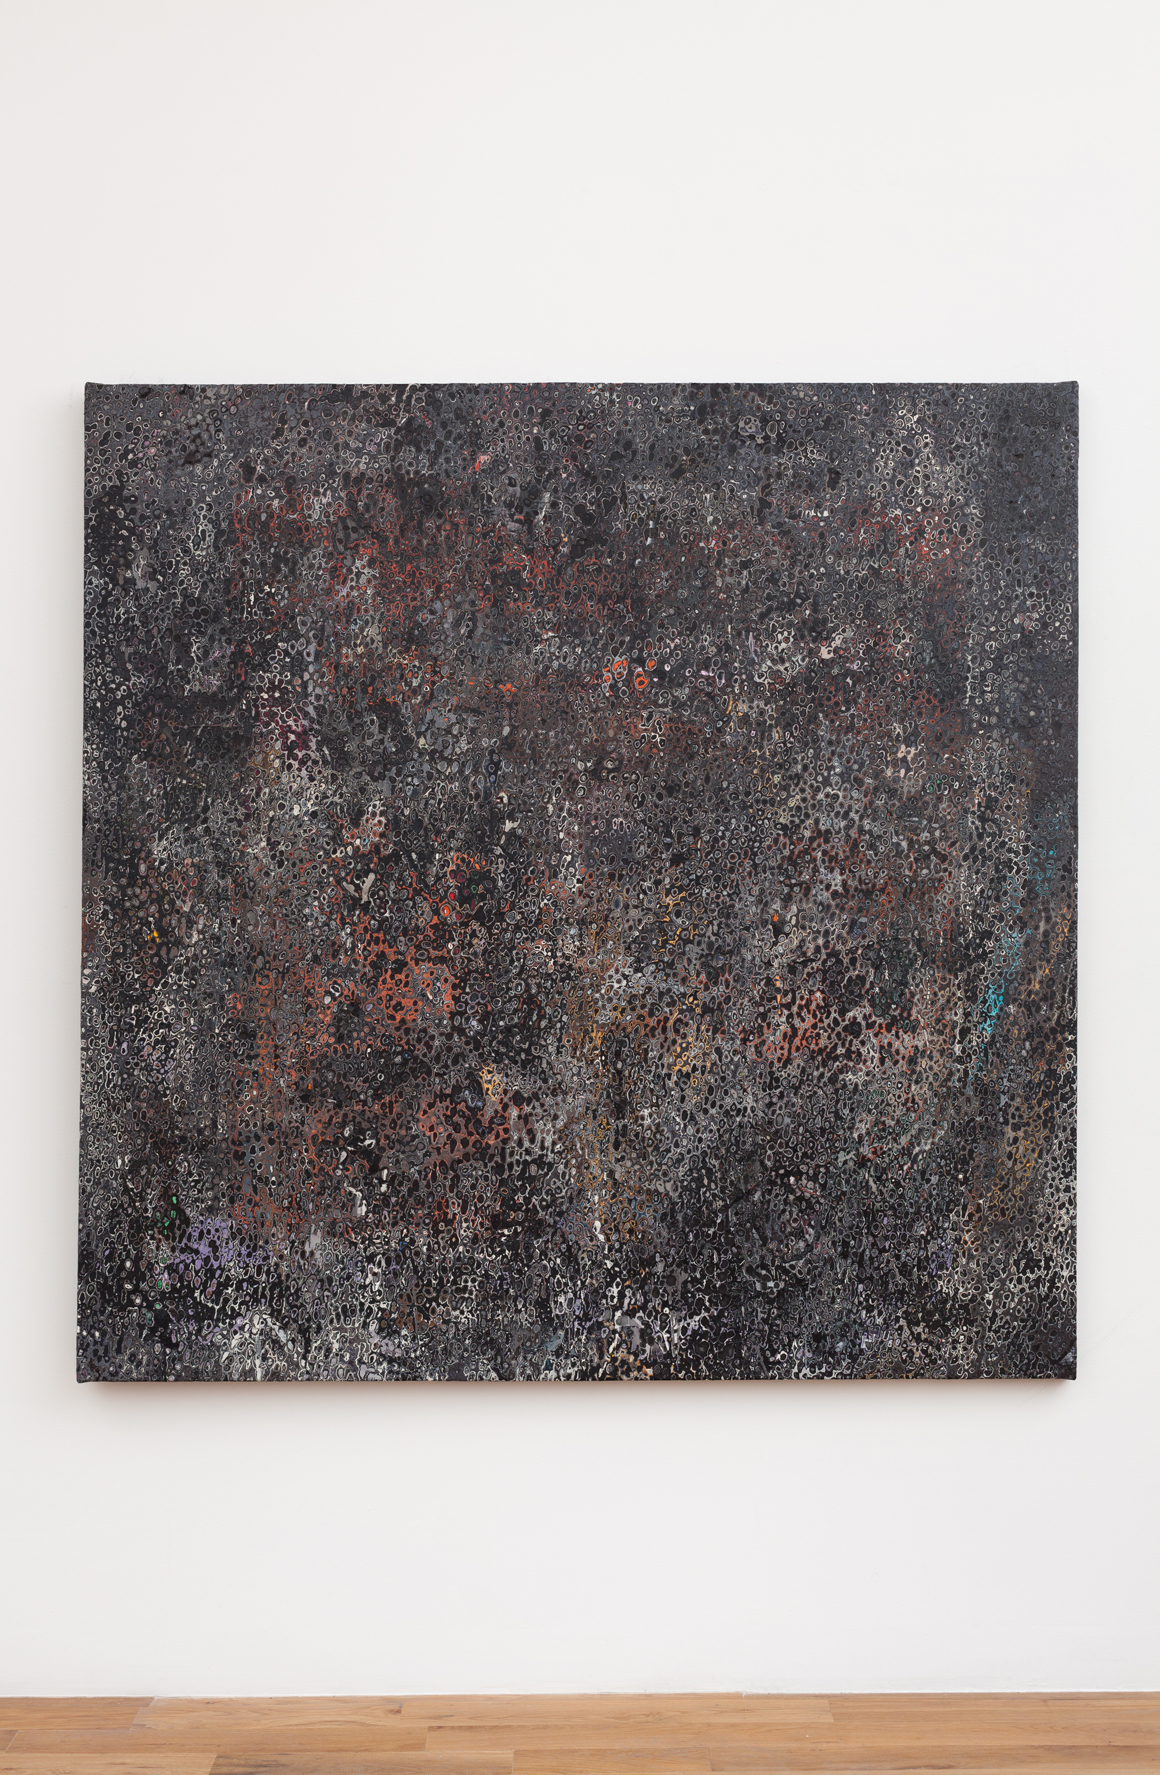 "<p><span class=""name"">Andrew Jensdotter</span><br><em>Artforum September 1965</em><span class='media'>Acrylic on canvas</span>63 x 63 in (160 x 160 cm)<br>2016<br></p>"